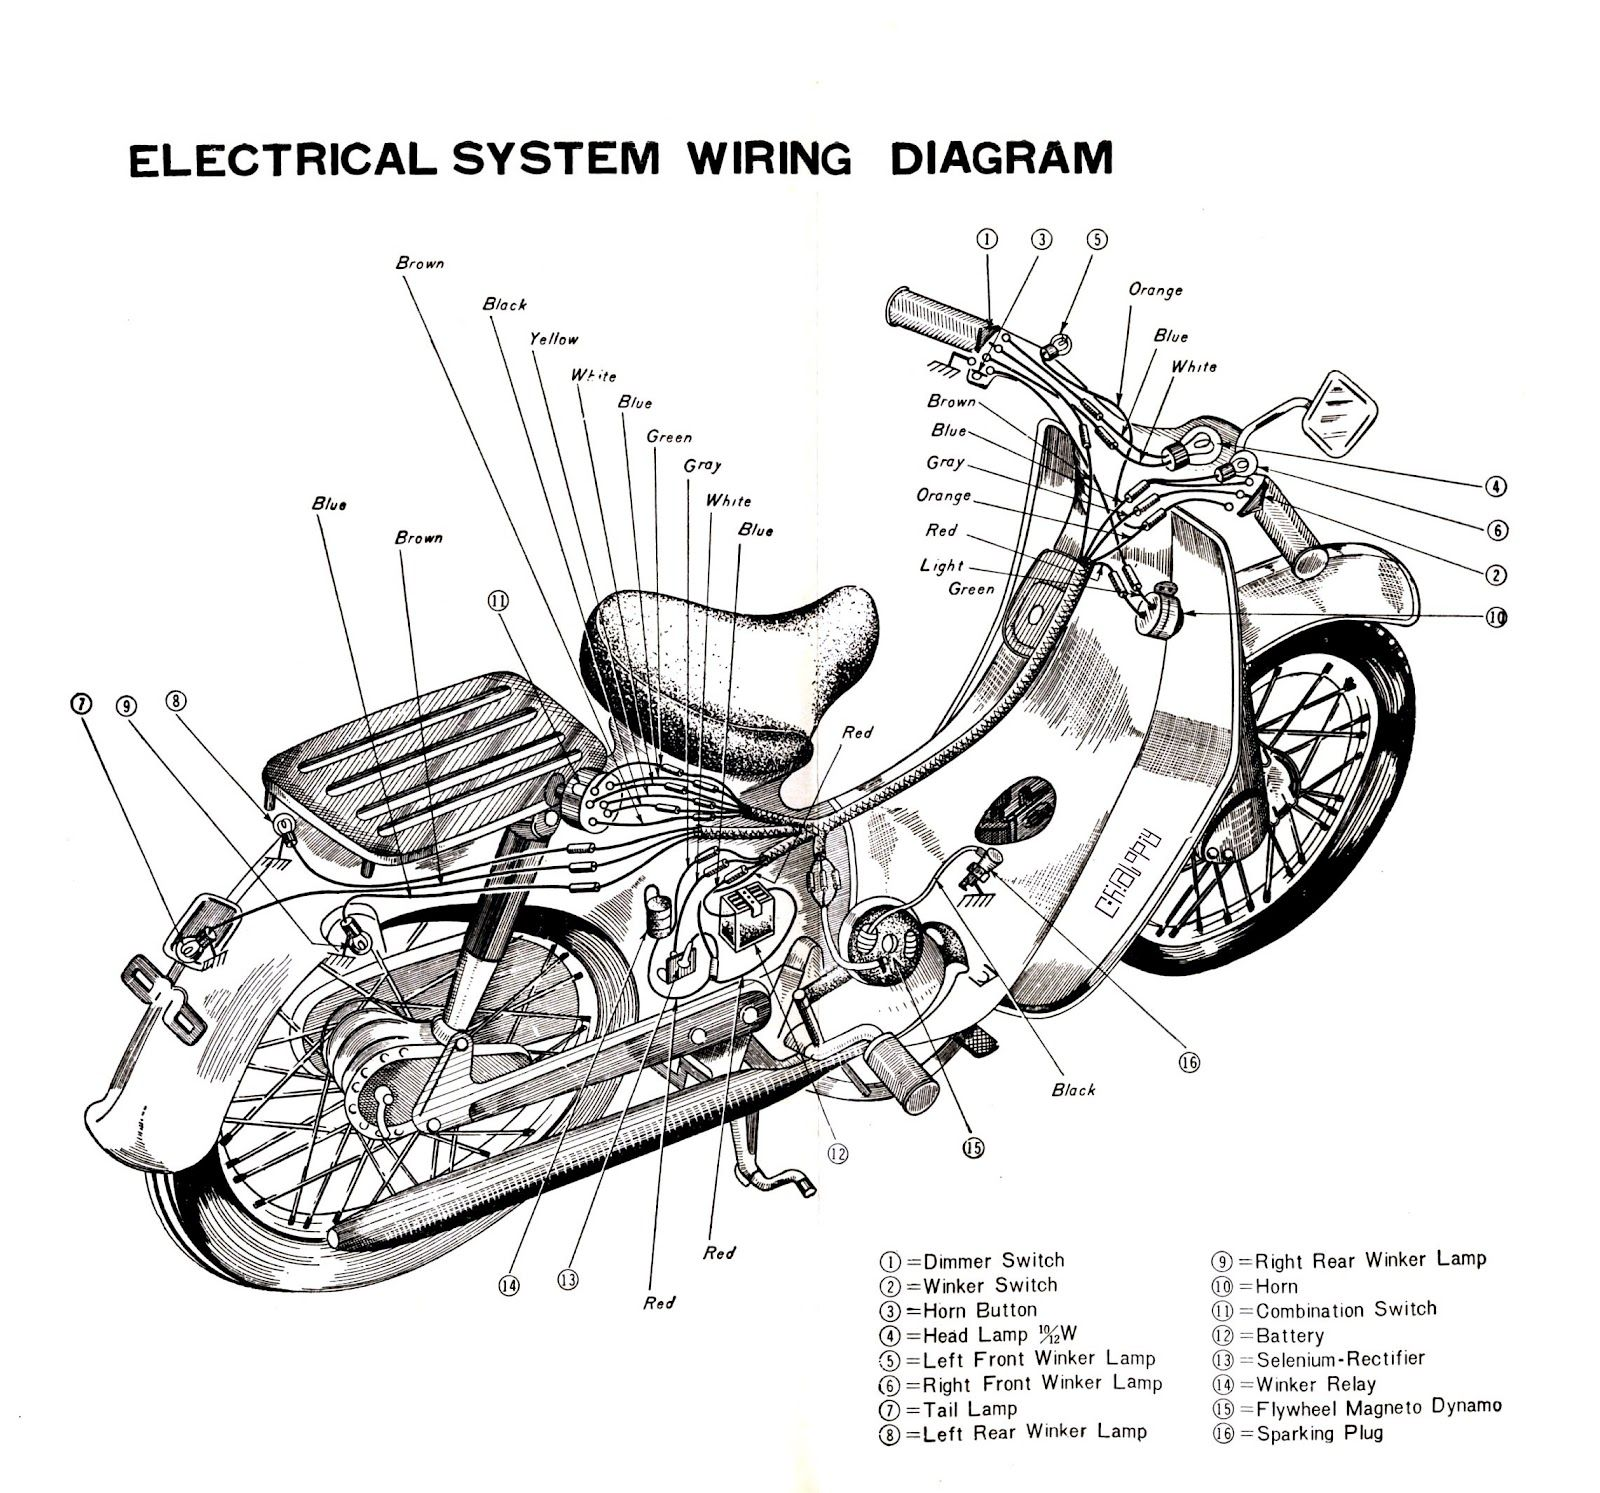 Super Club Electric Wiring Diagram Cub Project Pinterest Honda Scooter Schematic